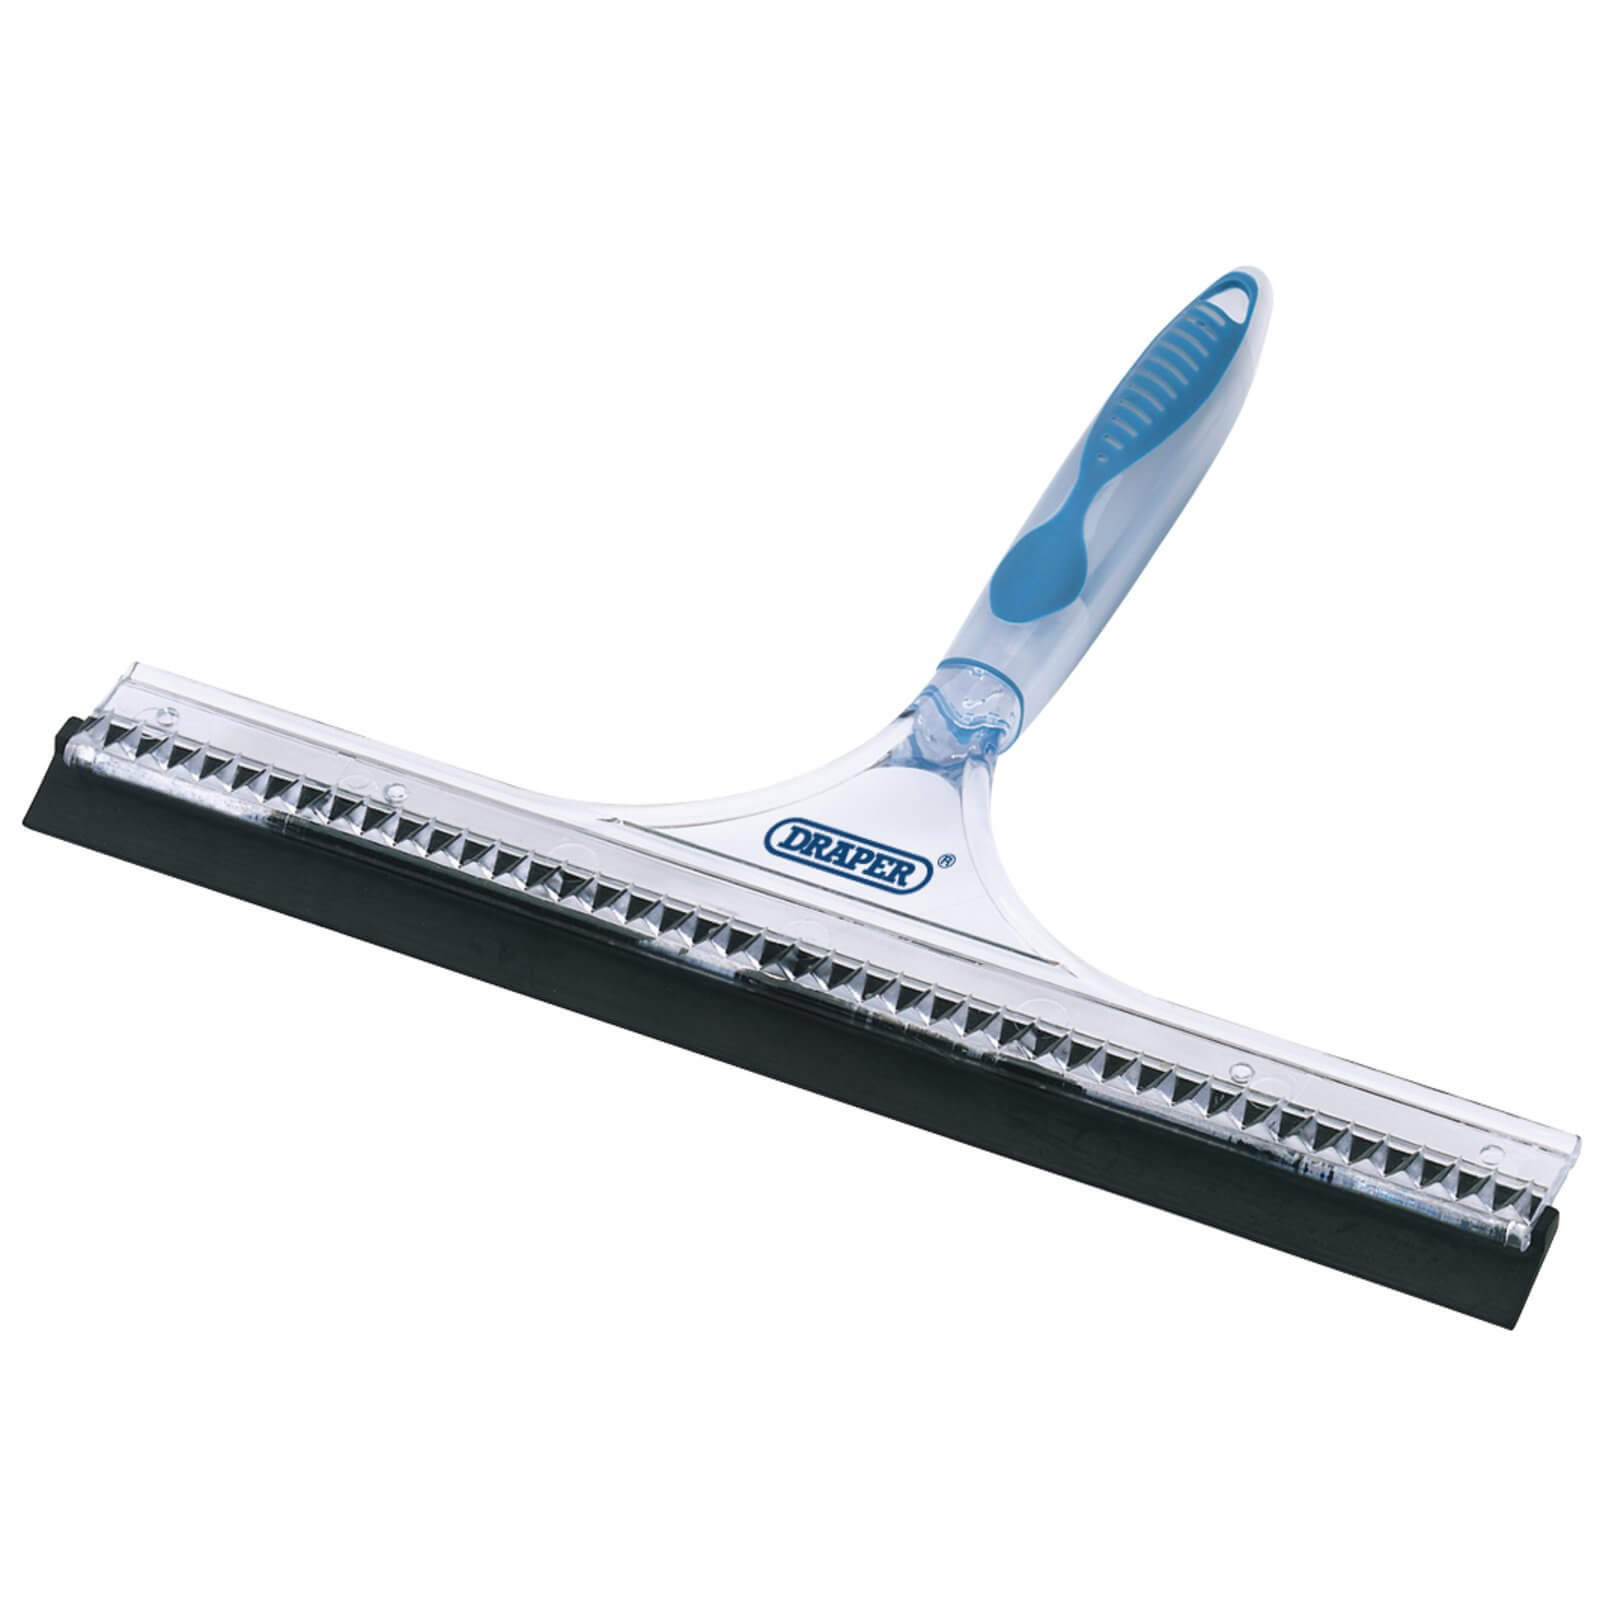 Image of Draper Neoprene Rubber Squeegee 300mm